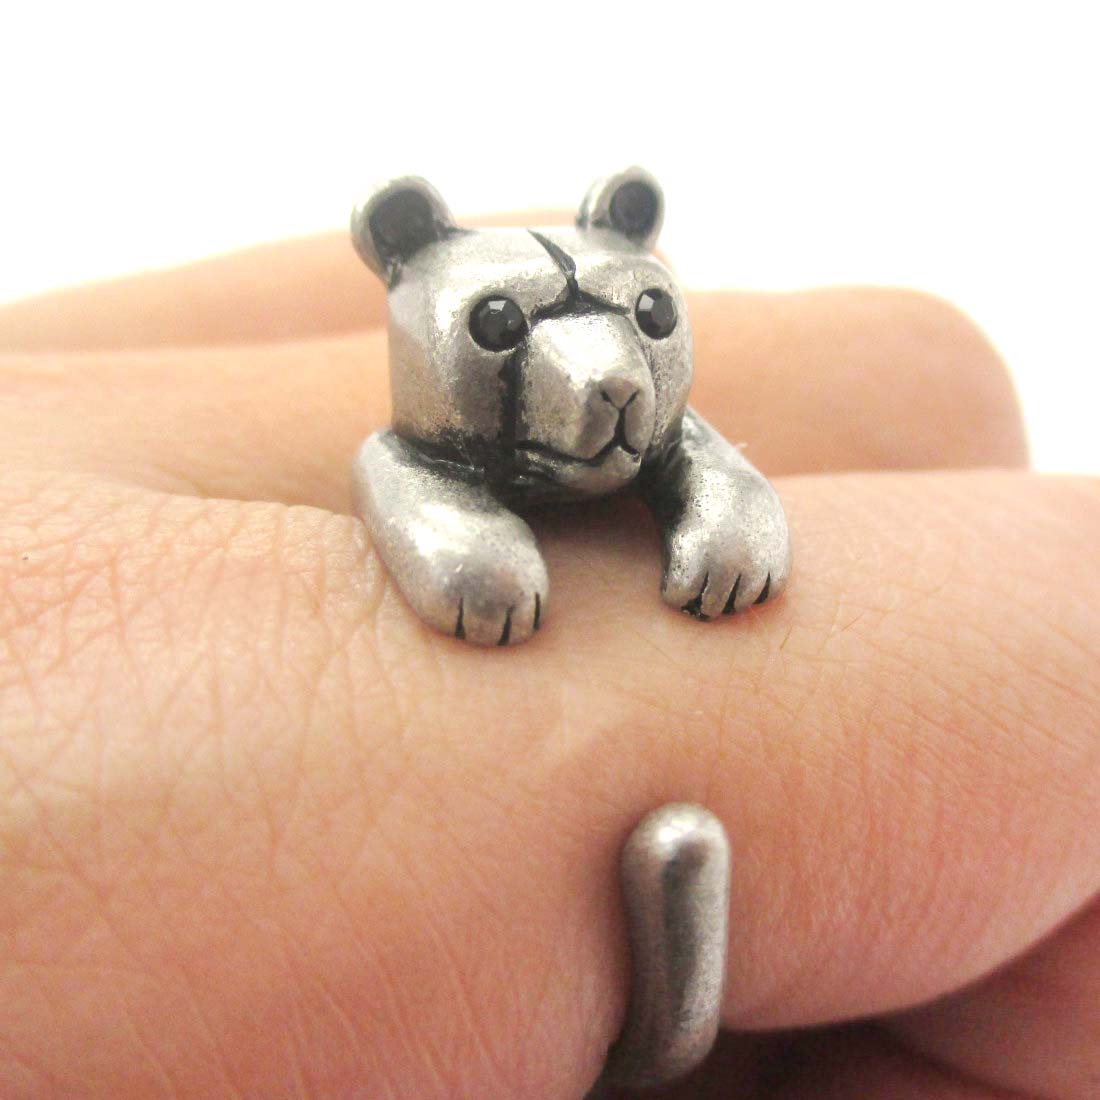 3D Miniature Polar Bear Teddy Animal Wrap Hug Ring in Silver - US Size 4 to 8.5